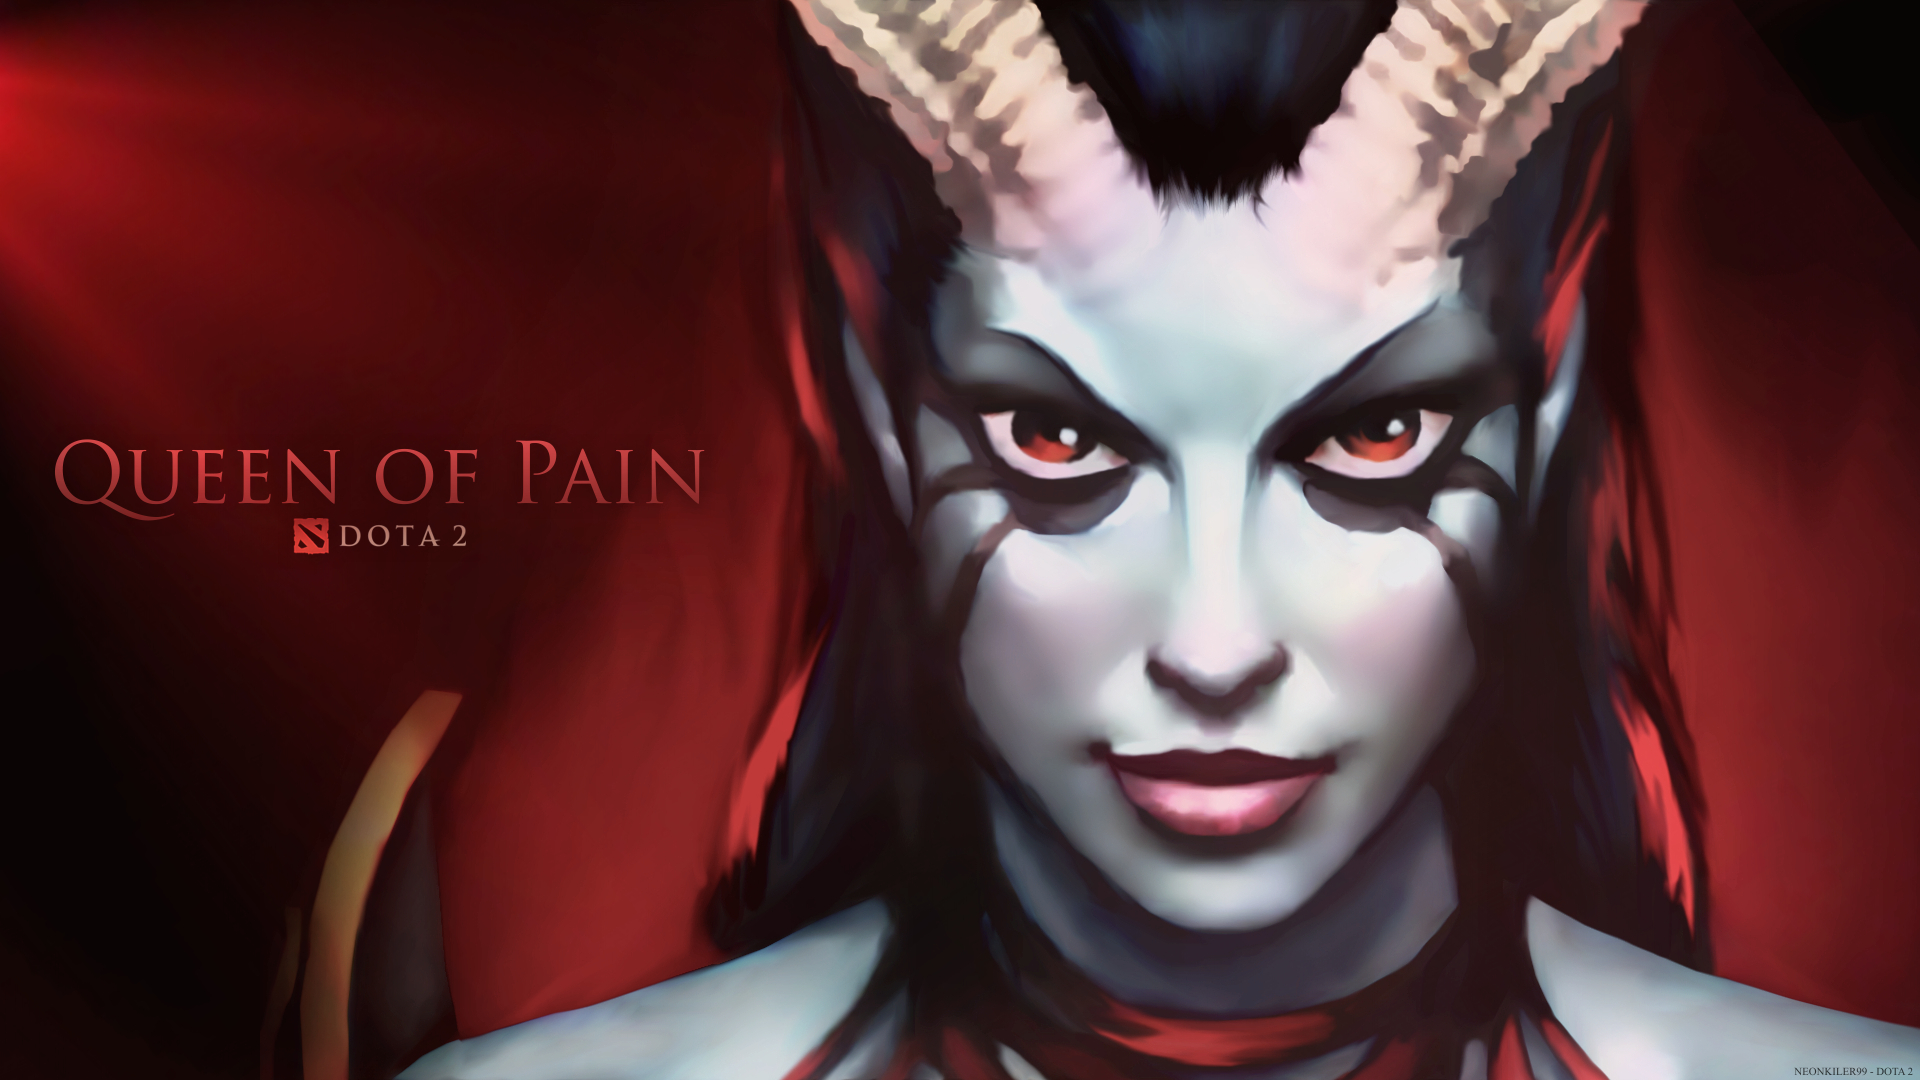 Queen of Pain Wallpaper Request